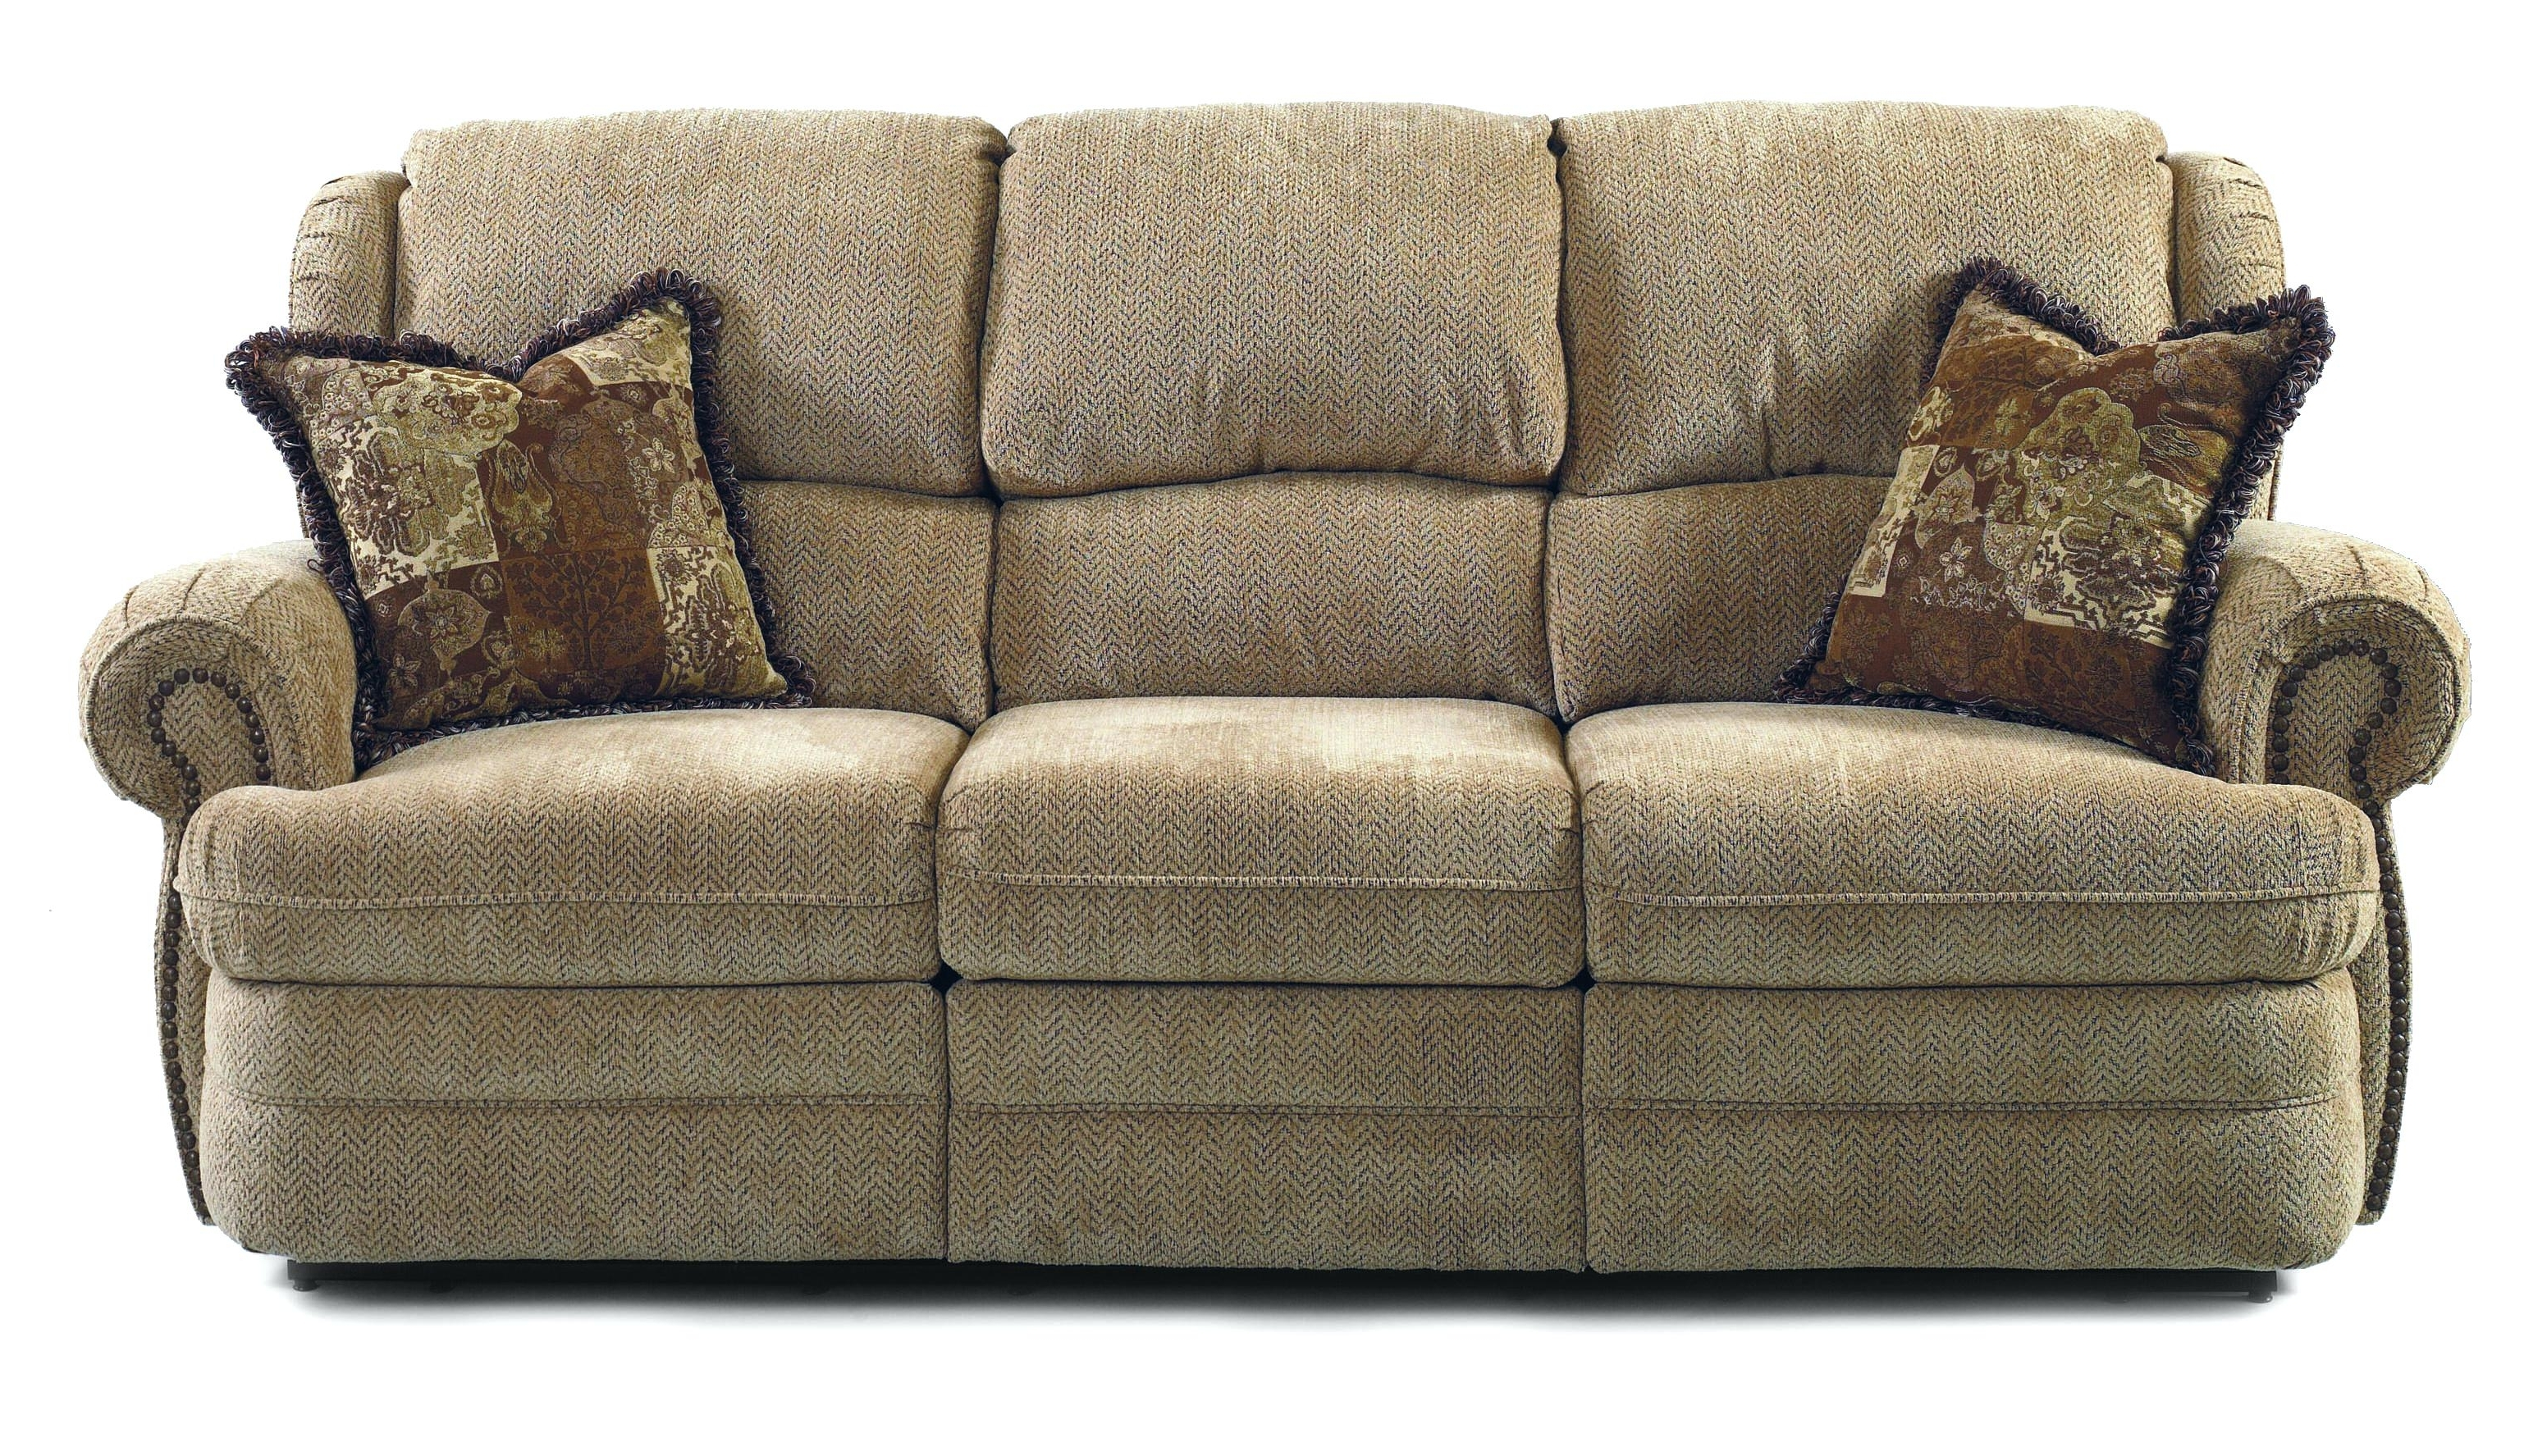 Recent Lane Furniture Sofas Within Lane Furniture Sofas Sofa – 4Parkar (View 18 of 20)